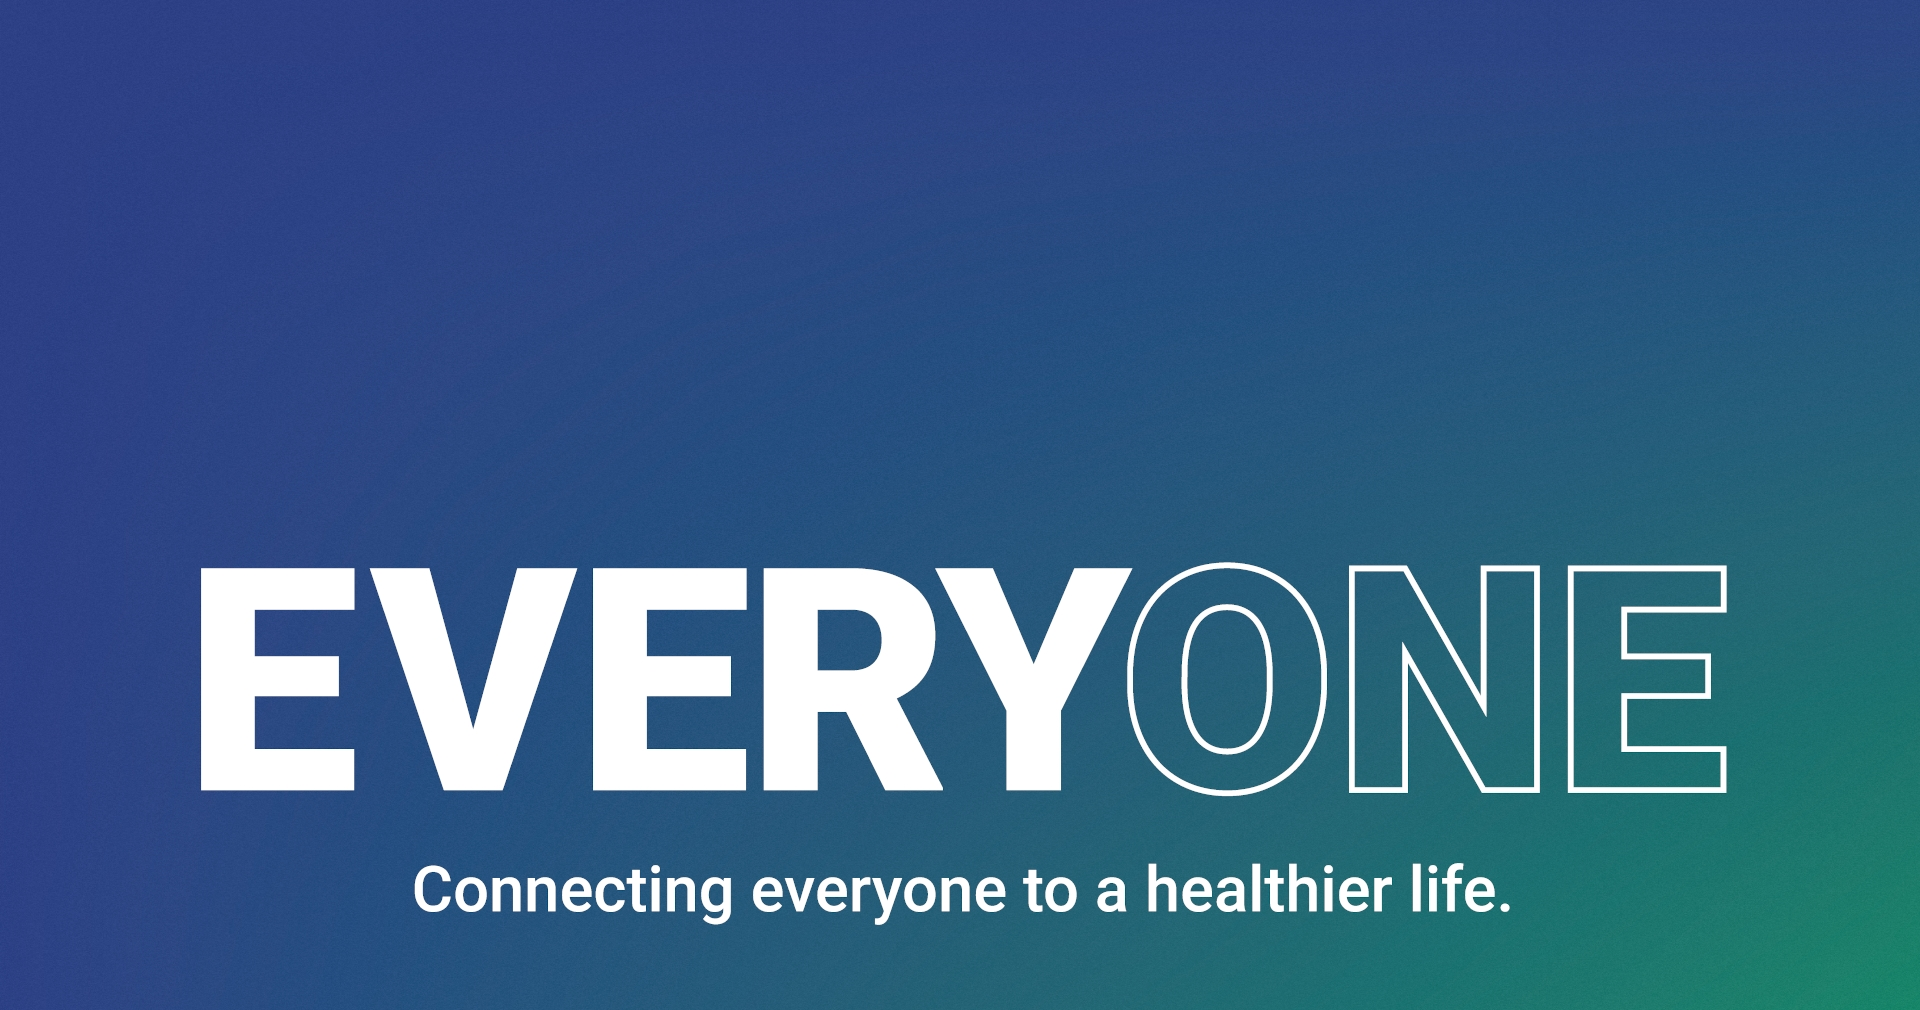 Background image that reads: Everyone - Connecting everyone to a healthier life.